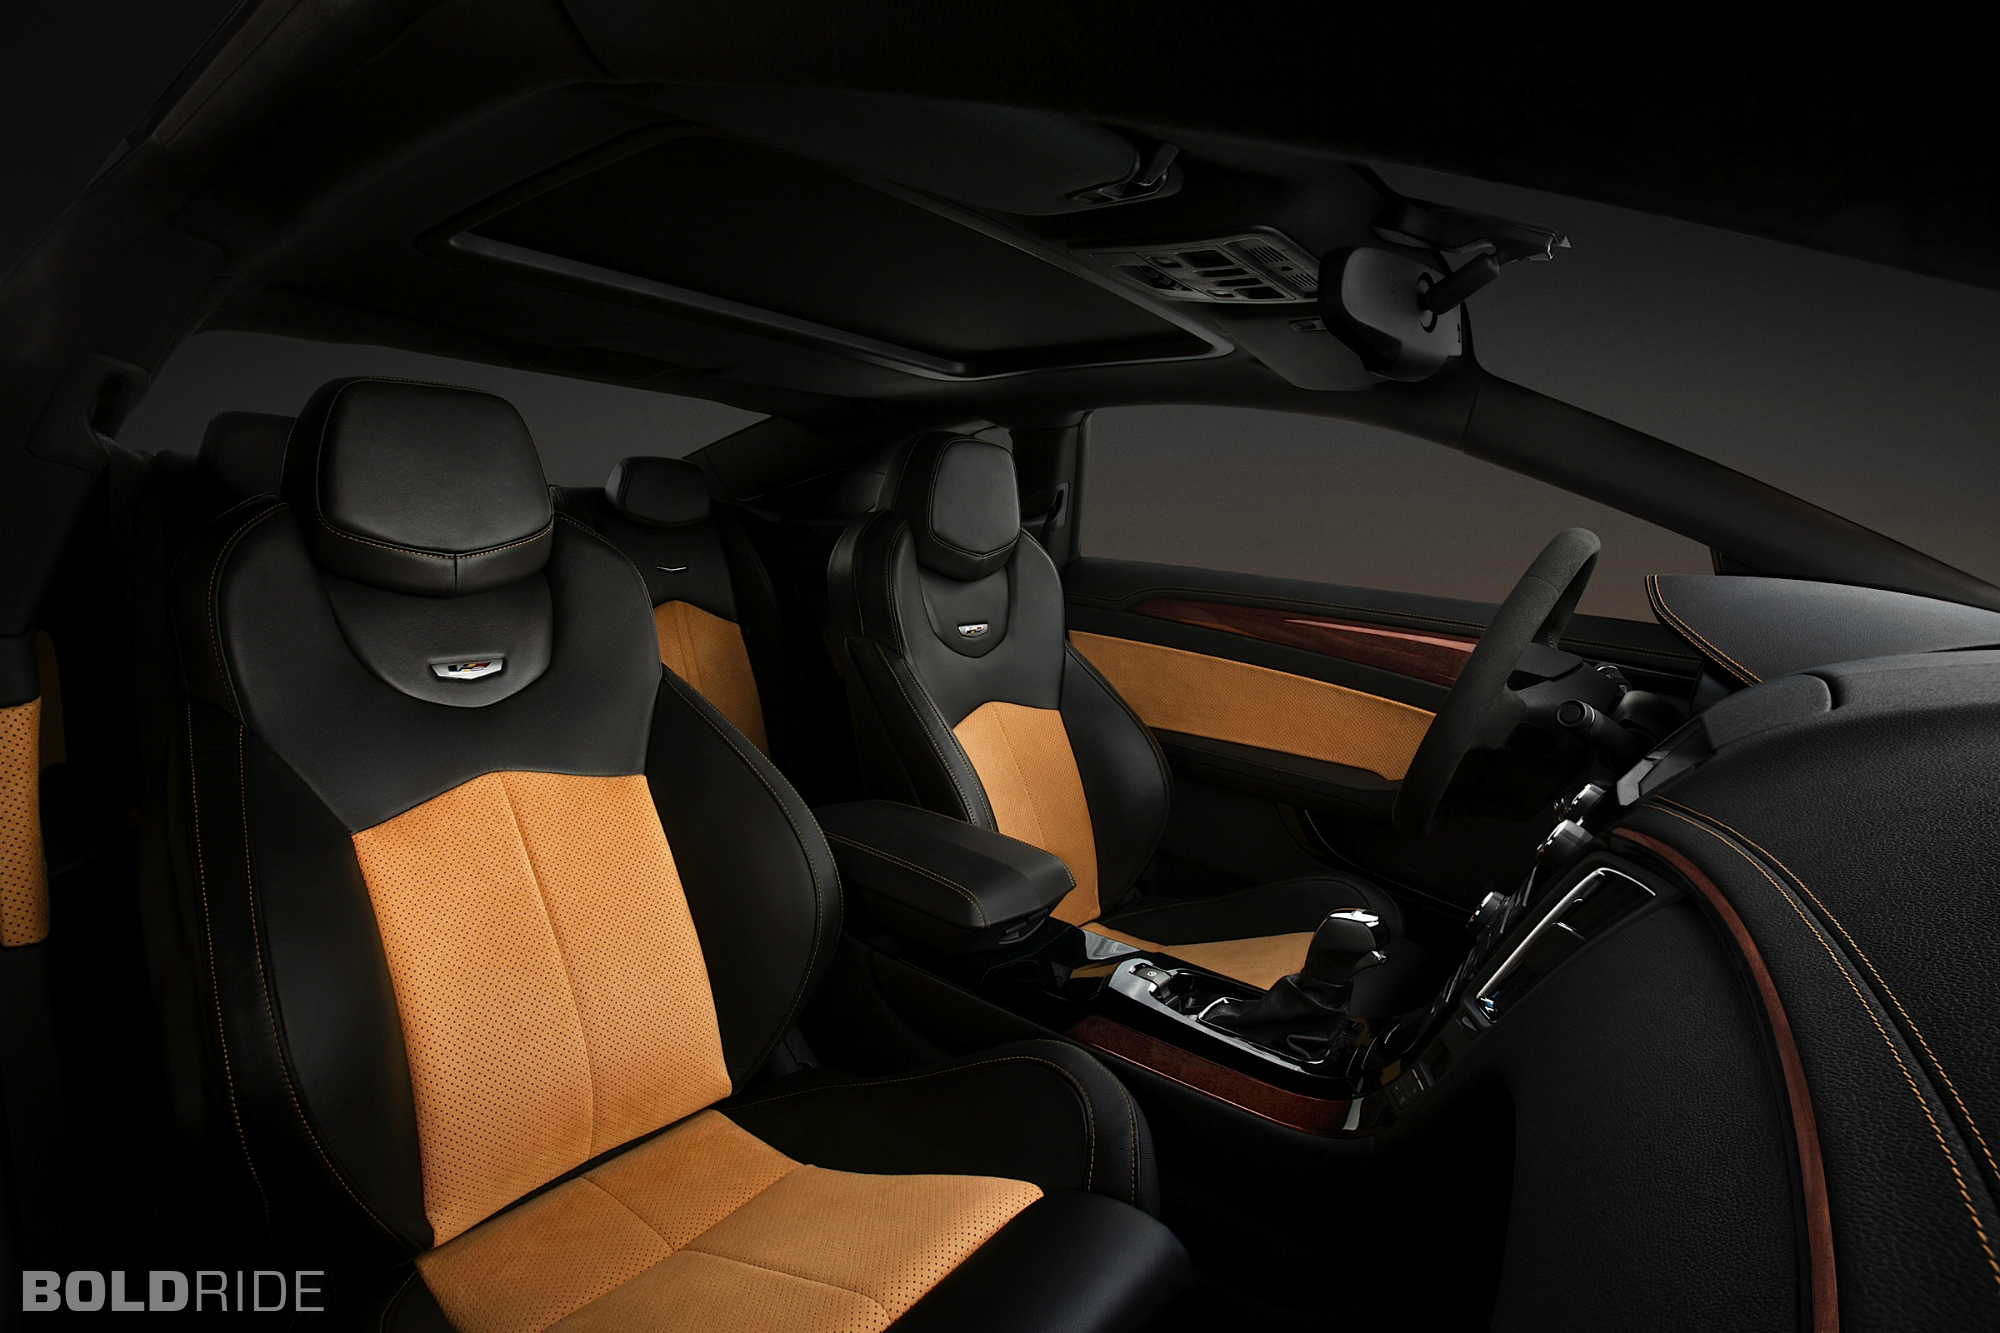 2014 Cadillac Cts V Coupe Muscle Sportcar Interior Wallpaper